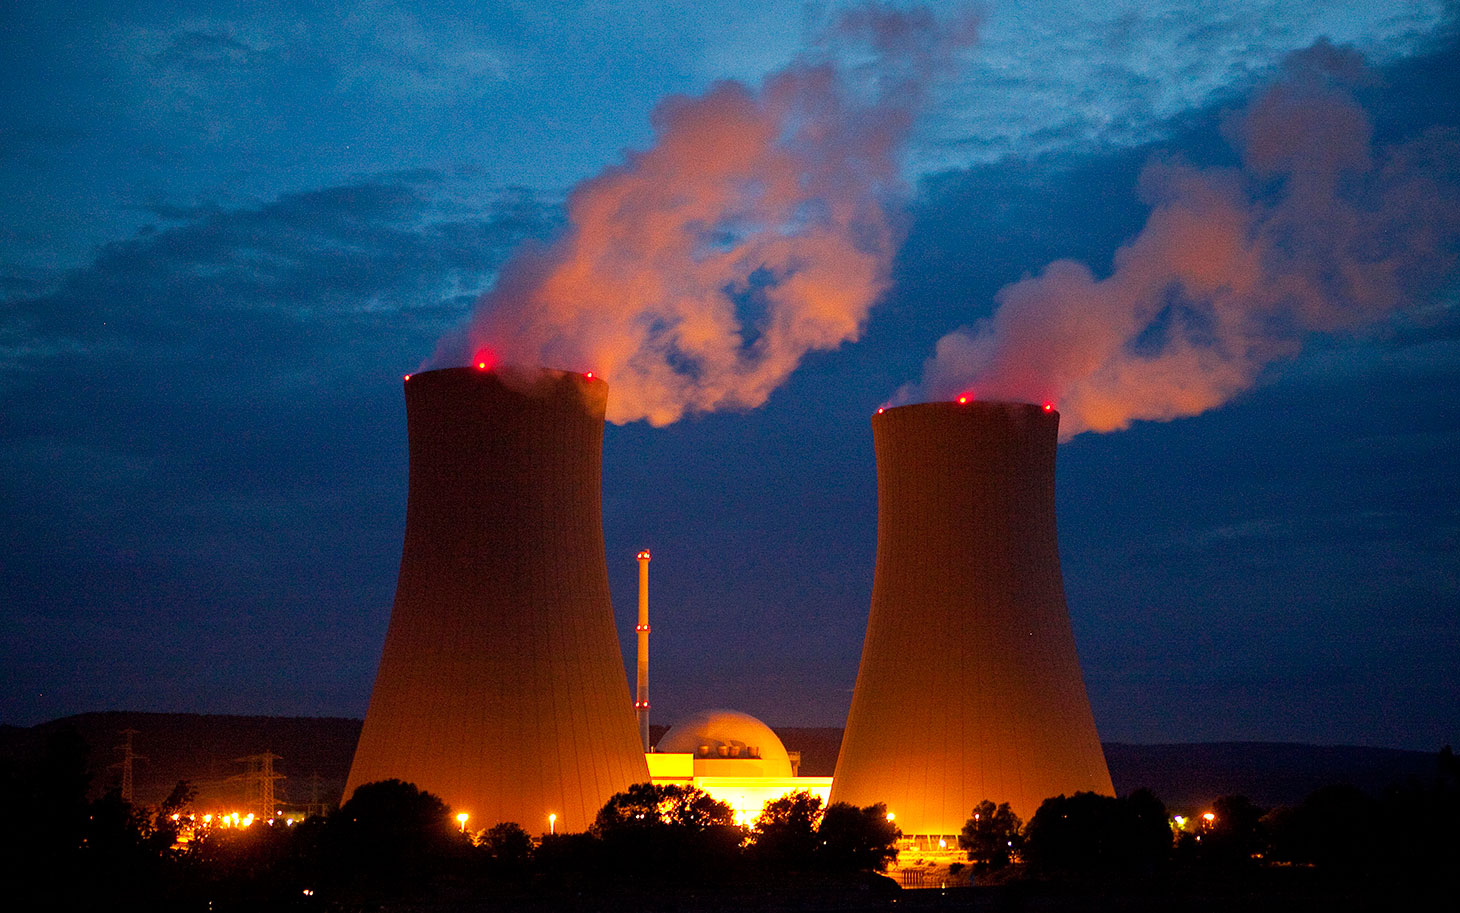 Cooling towers emit vapor into the night sky at a nuclear power plant operated by EON SE in Grohnde, Germany, on Wednesday, Aug. 07, 2013. Germany's air pollution is set to worsen for a second year, the first back-to-back increase since at least the 1980s, after Chancellor Angela Merkel's decision to shut nuclear plants led utilities to burn more coal. Photographer: Krisztian Bocsi/Bloomberg via Getty Images